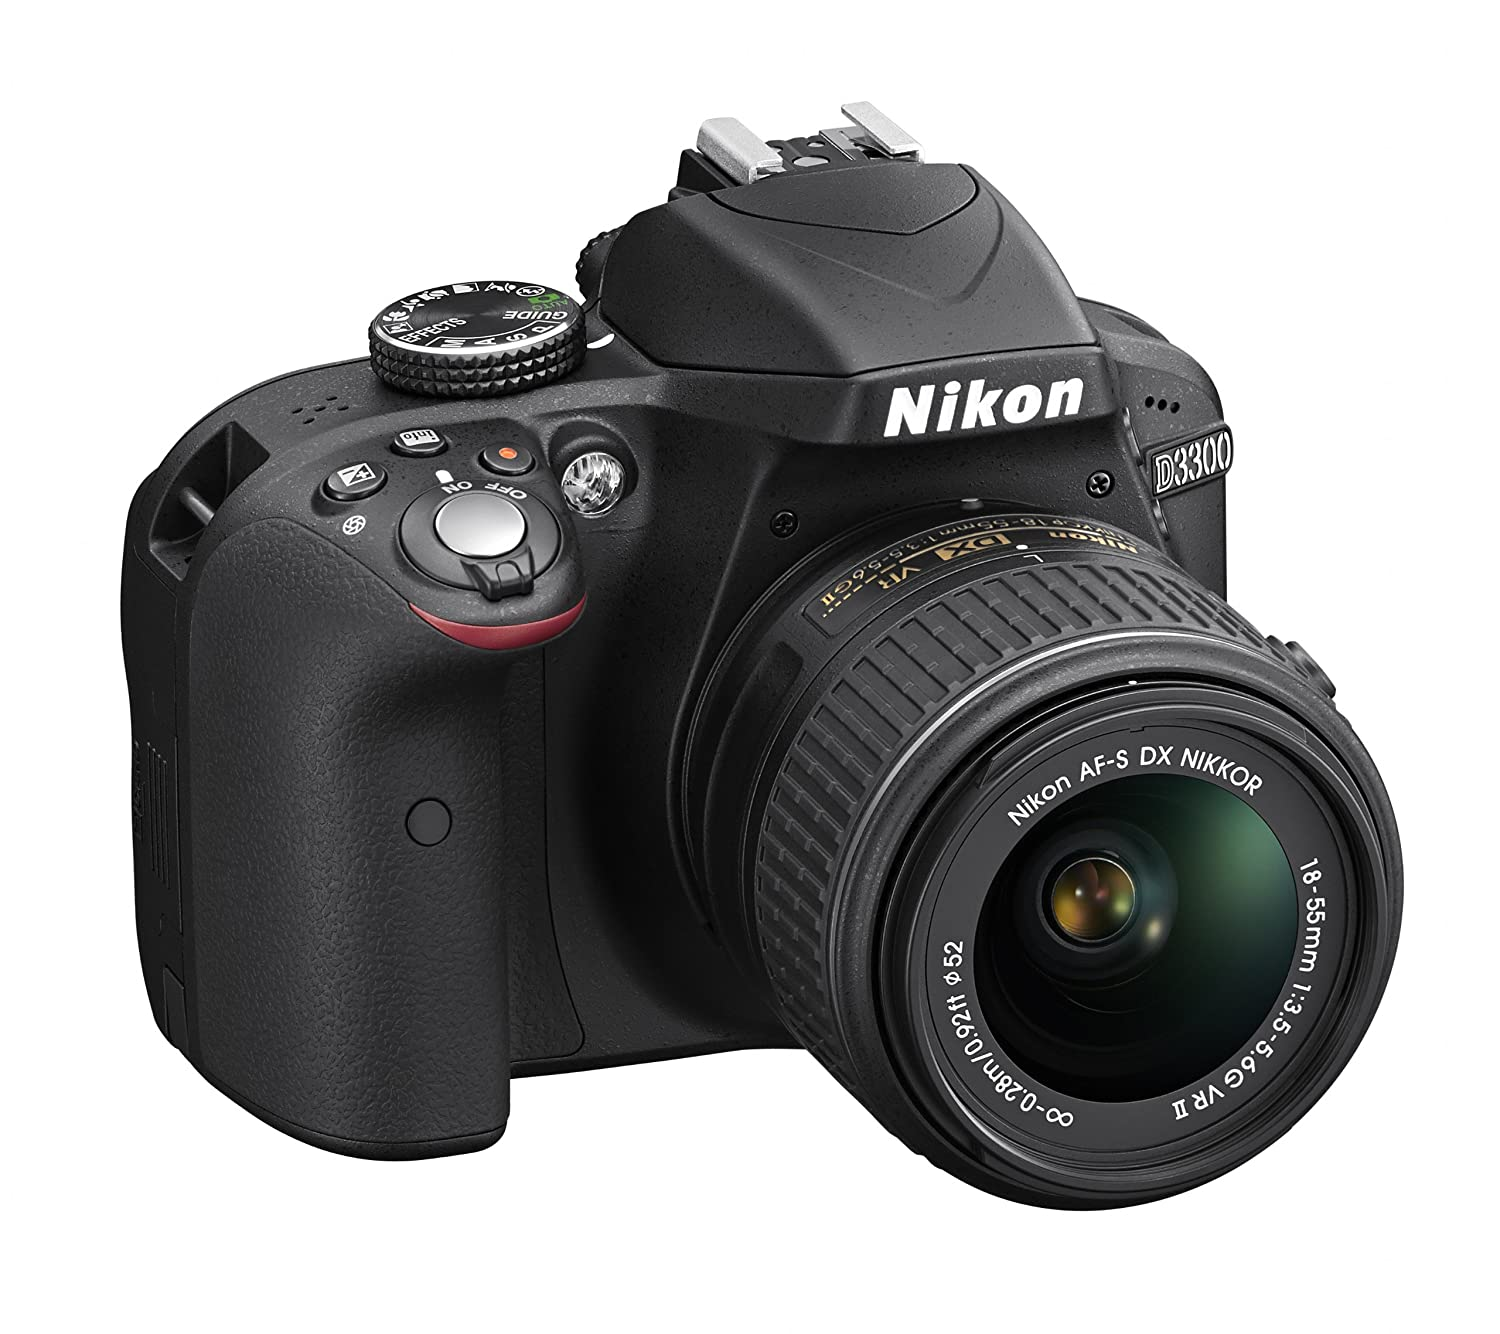 Nikon D3300 24.2 MP CMOS Digital SLR with AF-S DX NIKKOR 18-55mm f/3.5-5.6G VR II Zoom Lens